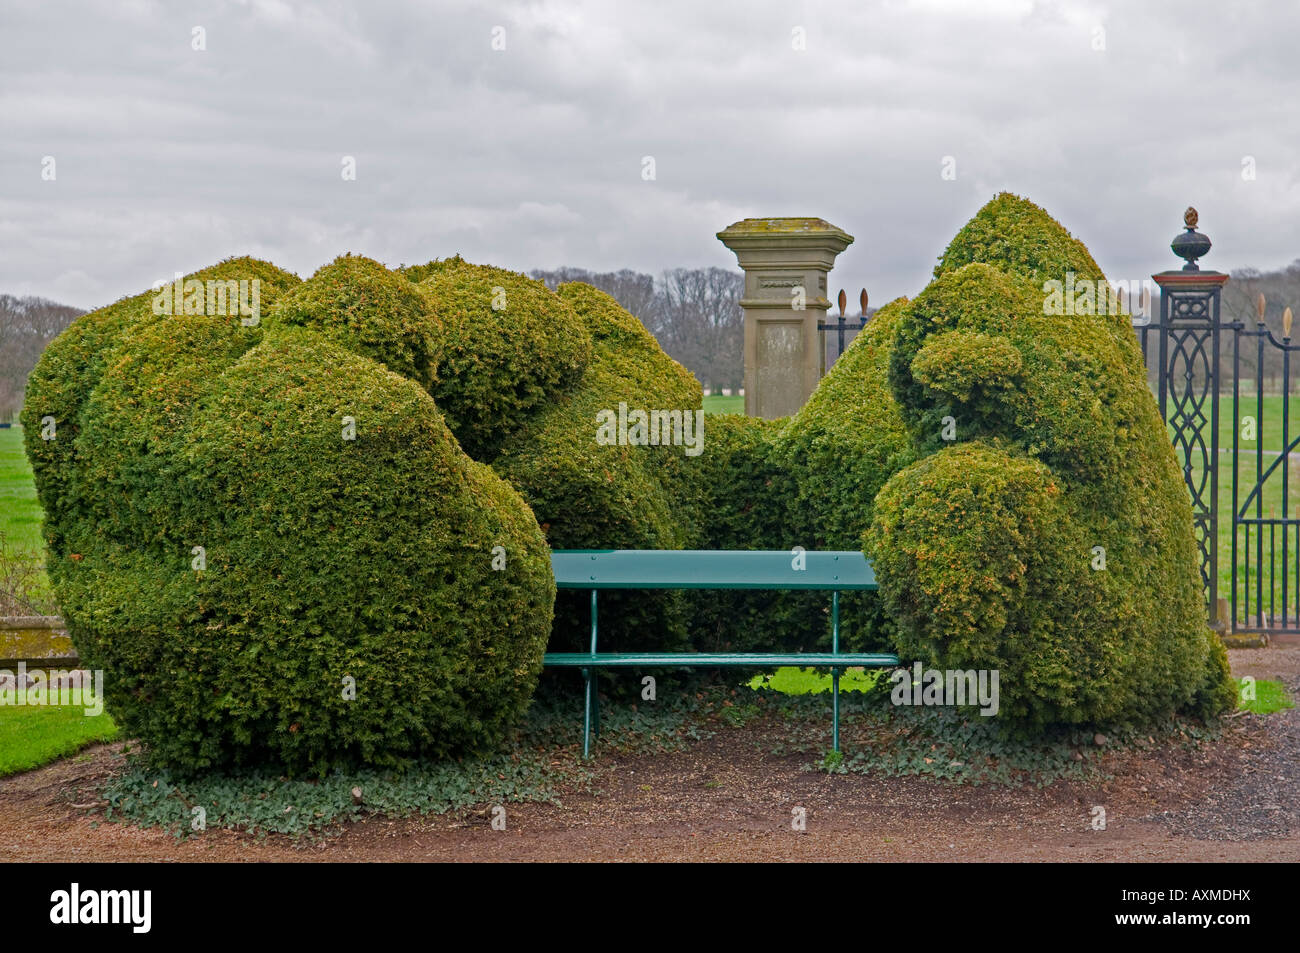 Bench surrounded by Yew hedge at Madresfield Court in Worcestershire - Stock Image